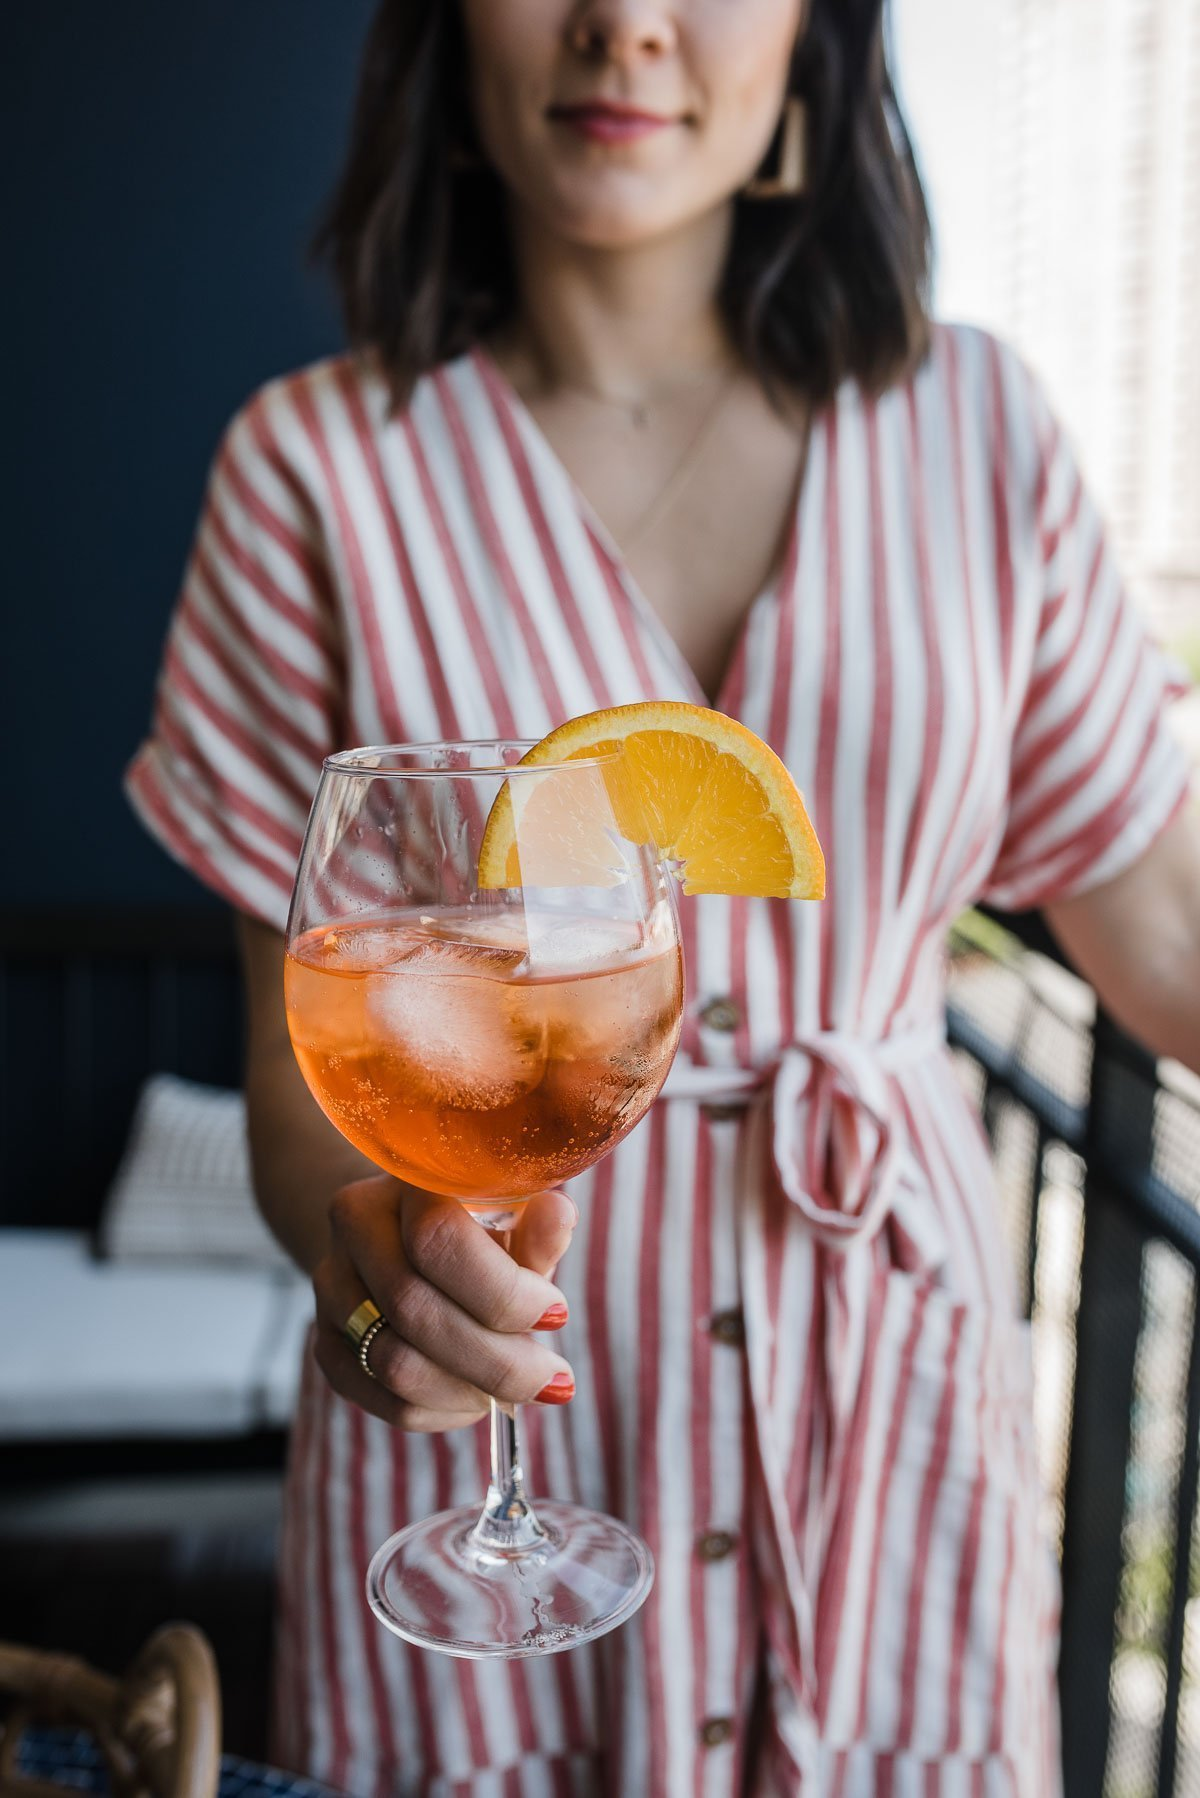 Aperol Spritz - A summertime cocktail